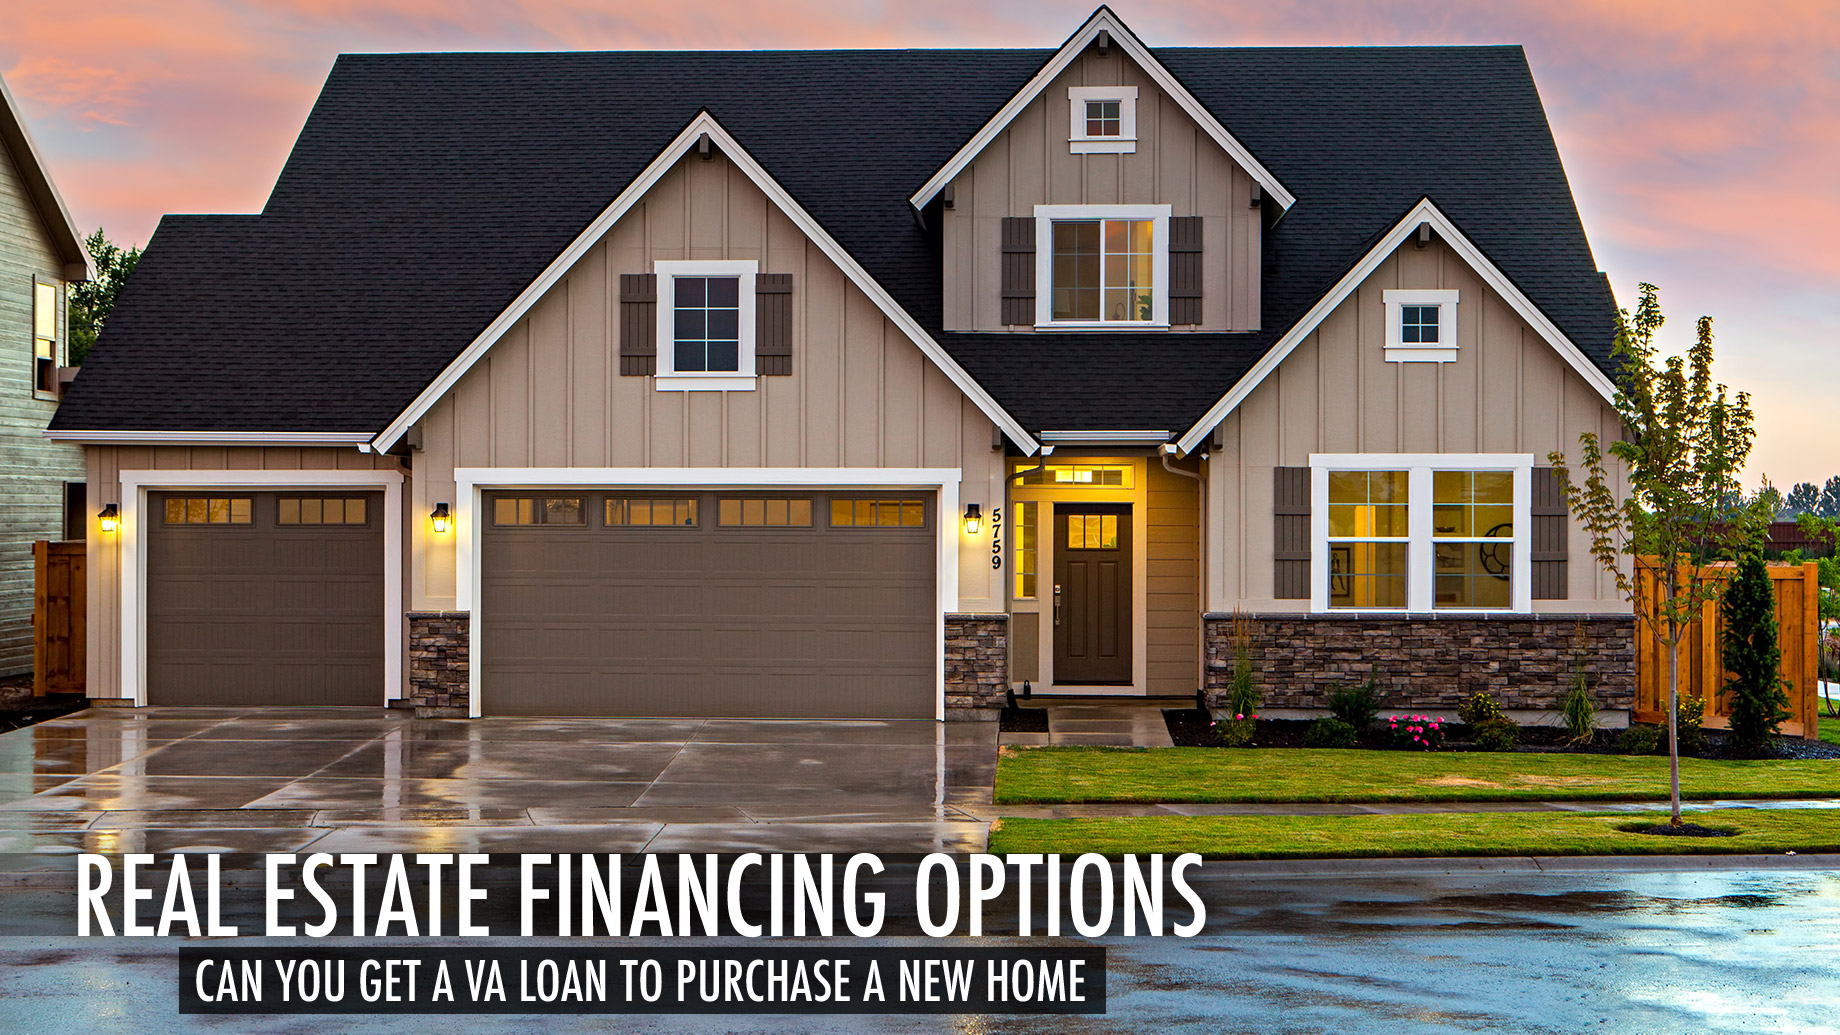 Real Estate Financing Options - Can You Get a VA Loan to Purchase a New Home